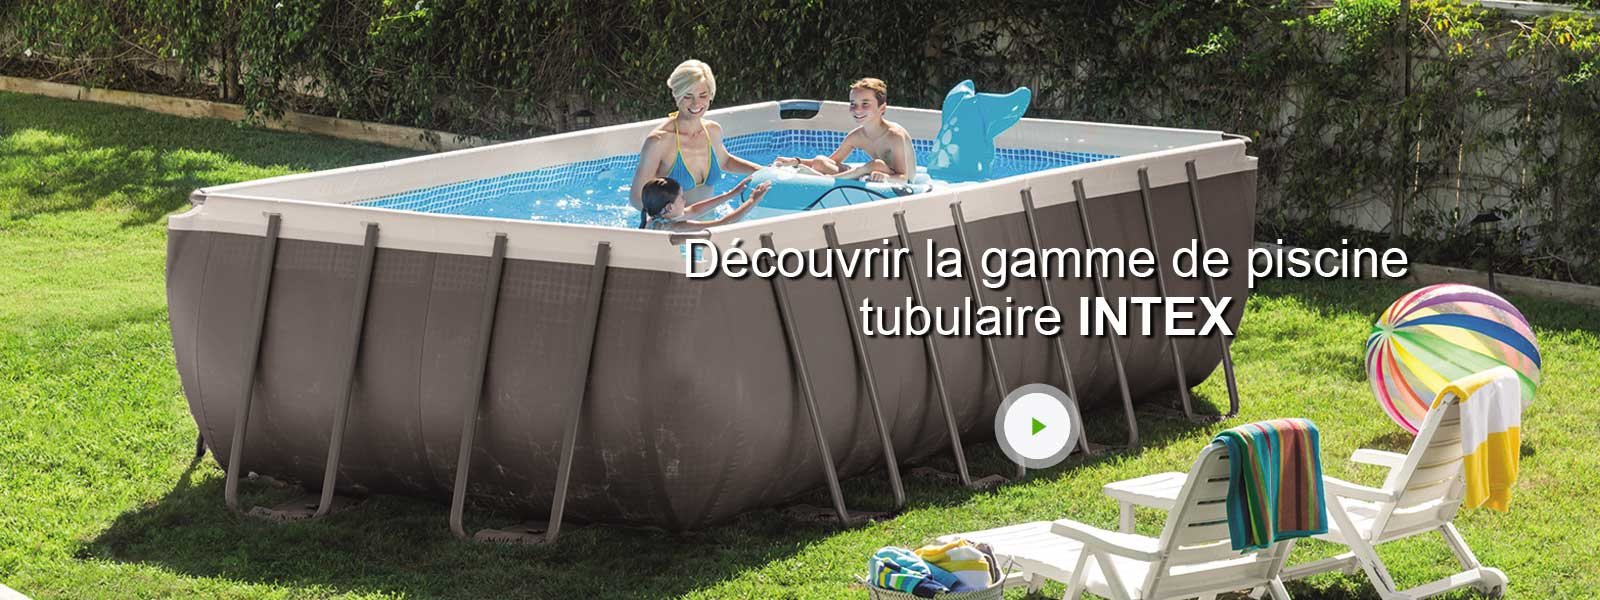 piscine tubulaire intex avis